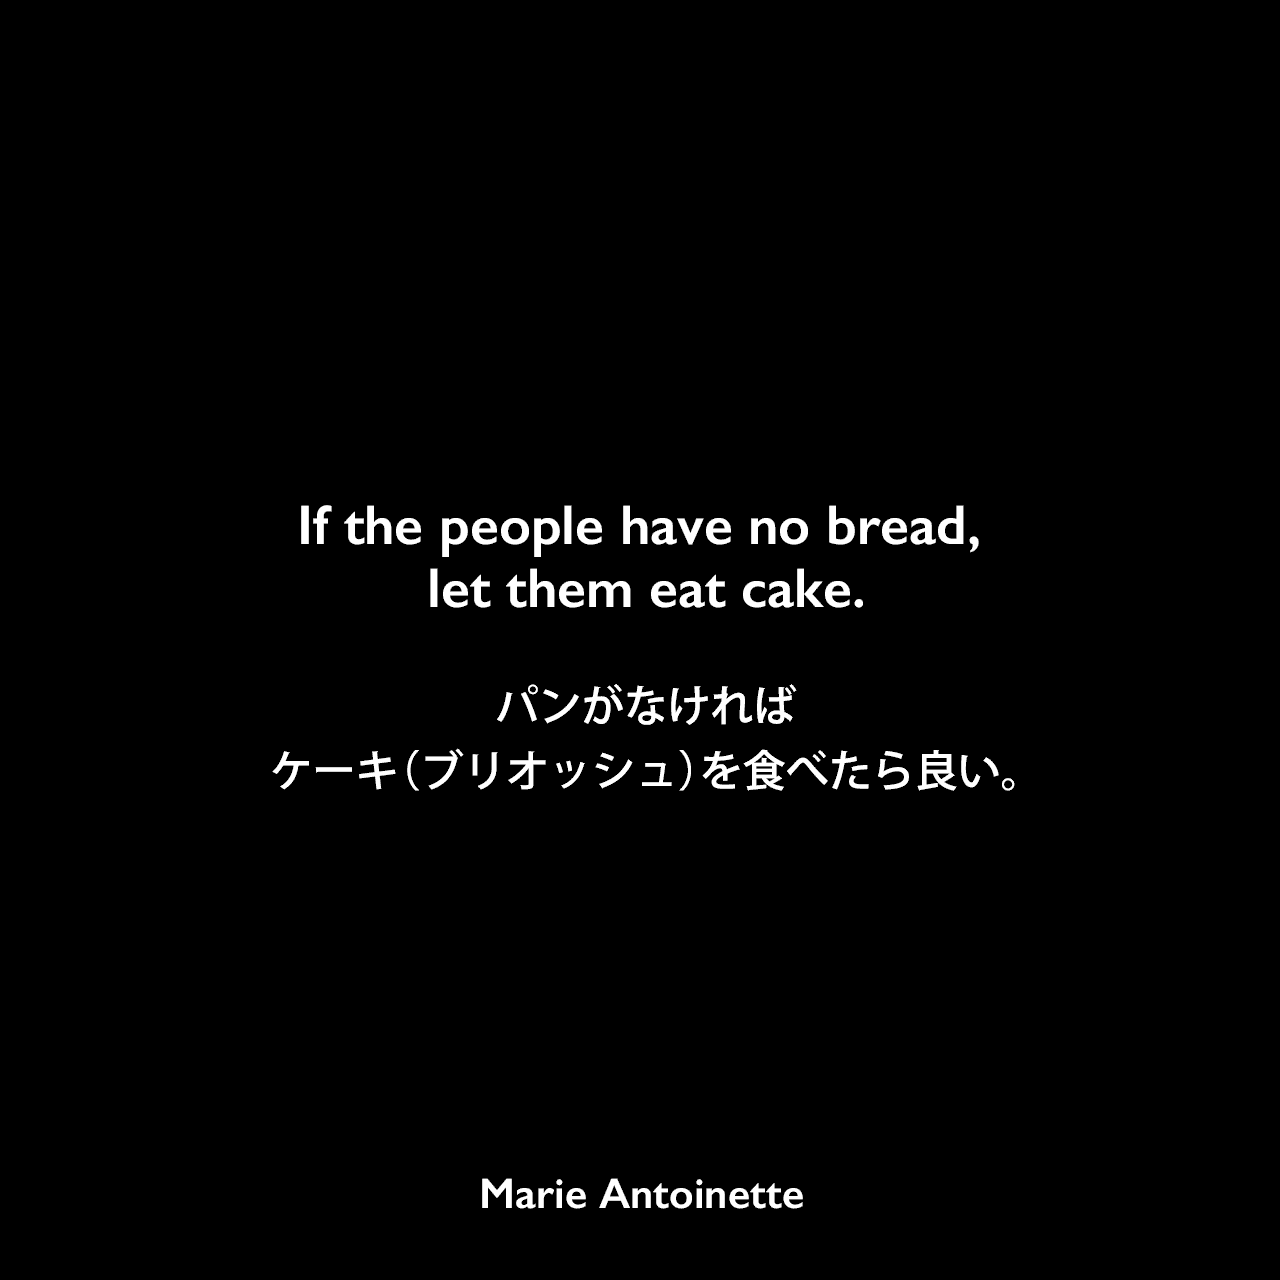 If the people have no bread, let them eat cake.パンがなければケーキ(ブリオッシュ)を食べたら良い。Marie Antoinette